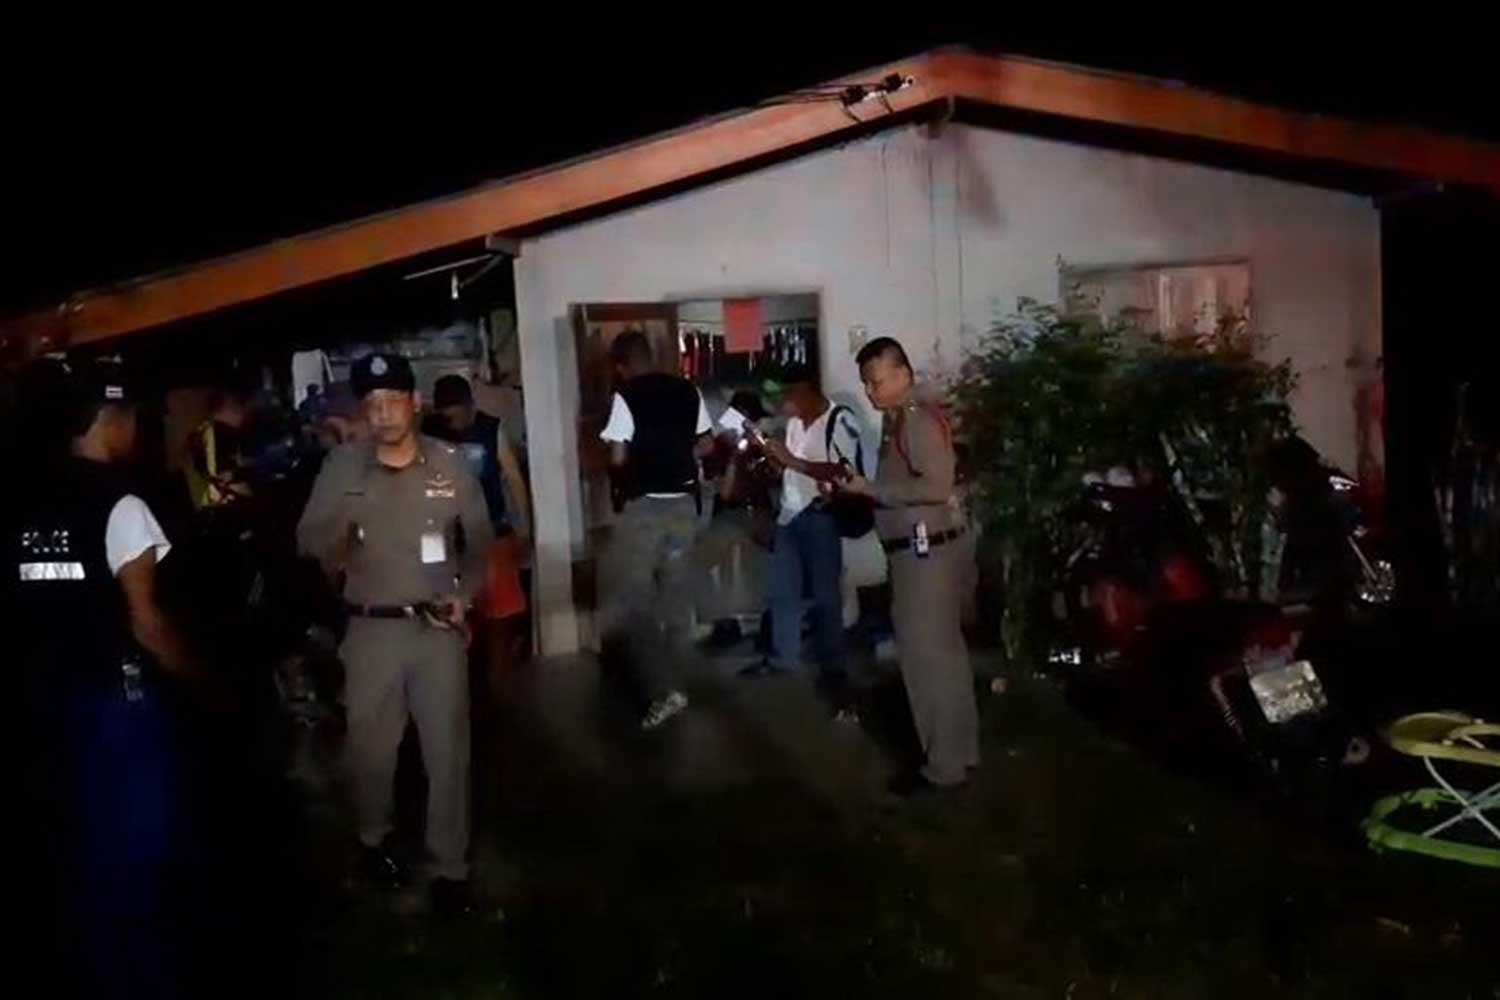 Police at the scene of the shooting in Thung Yai district of Nakhon Si Thammarat, where a father simmering with resentment shot dead his son-in-law in full view of two family members on Tuesday night. (Photo by Nujaree Raekrun)